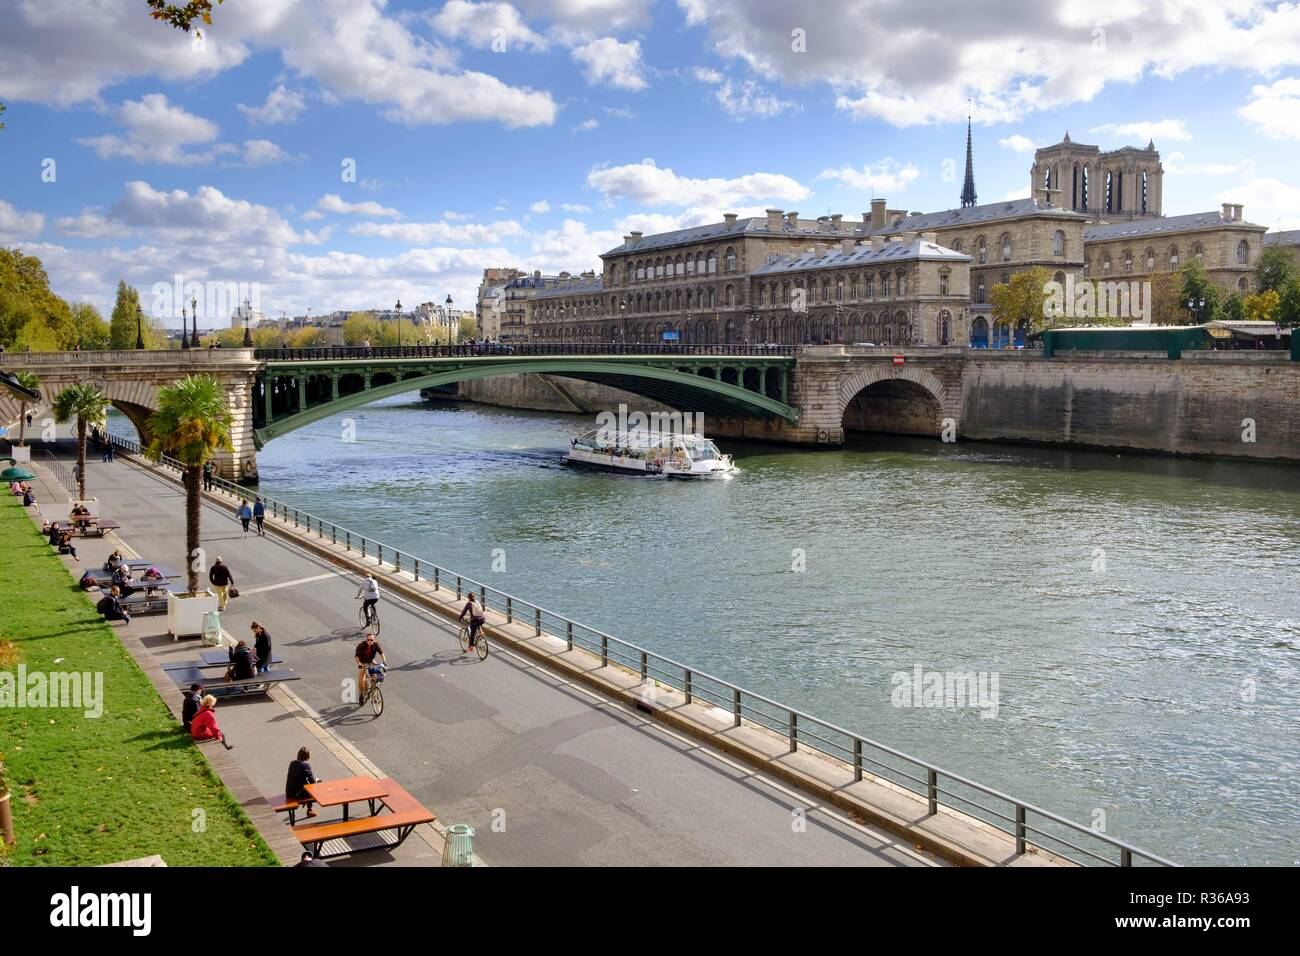 Aerial view of Boat and Pont Notre-Dame with Voie George Pompidou pedestrian and cycling path, Paris, France - Stock Image